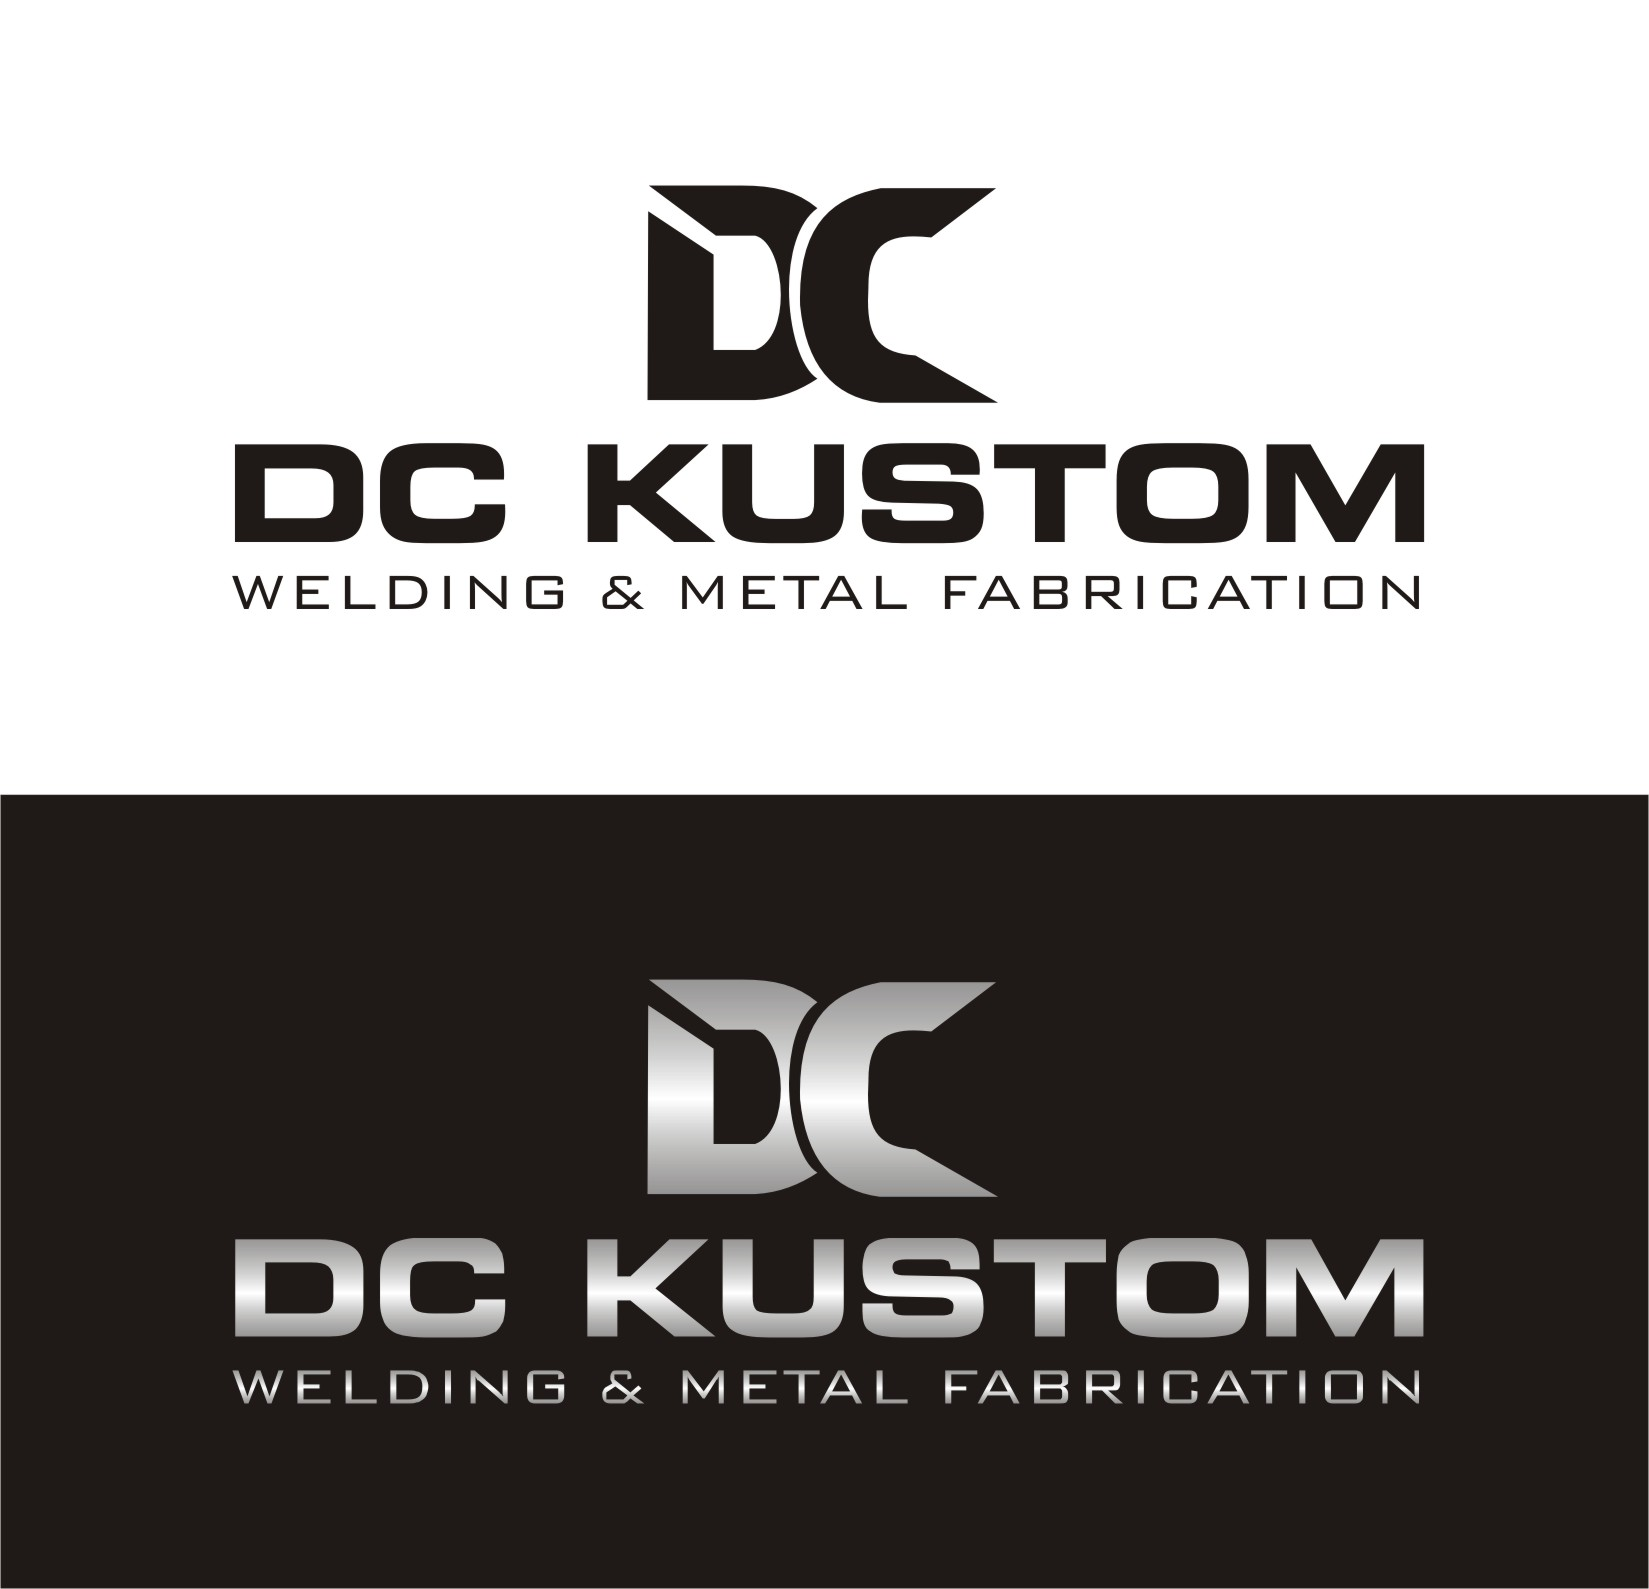 Logo Design by I graphics GRAPHICS - Entry No. 135 in the Logo Design Contest Imaginative Logo Design for DC KUSTOM WELDING & METAL FABRICATION.